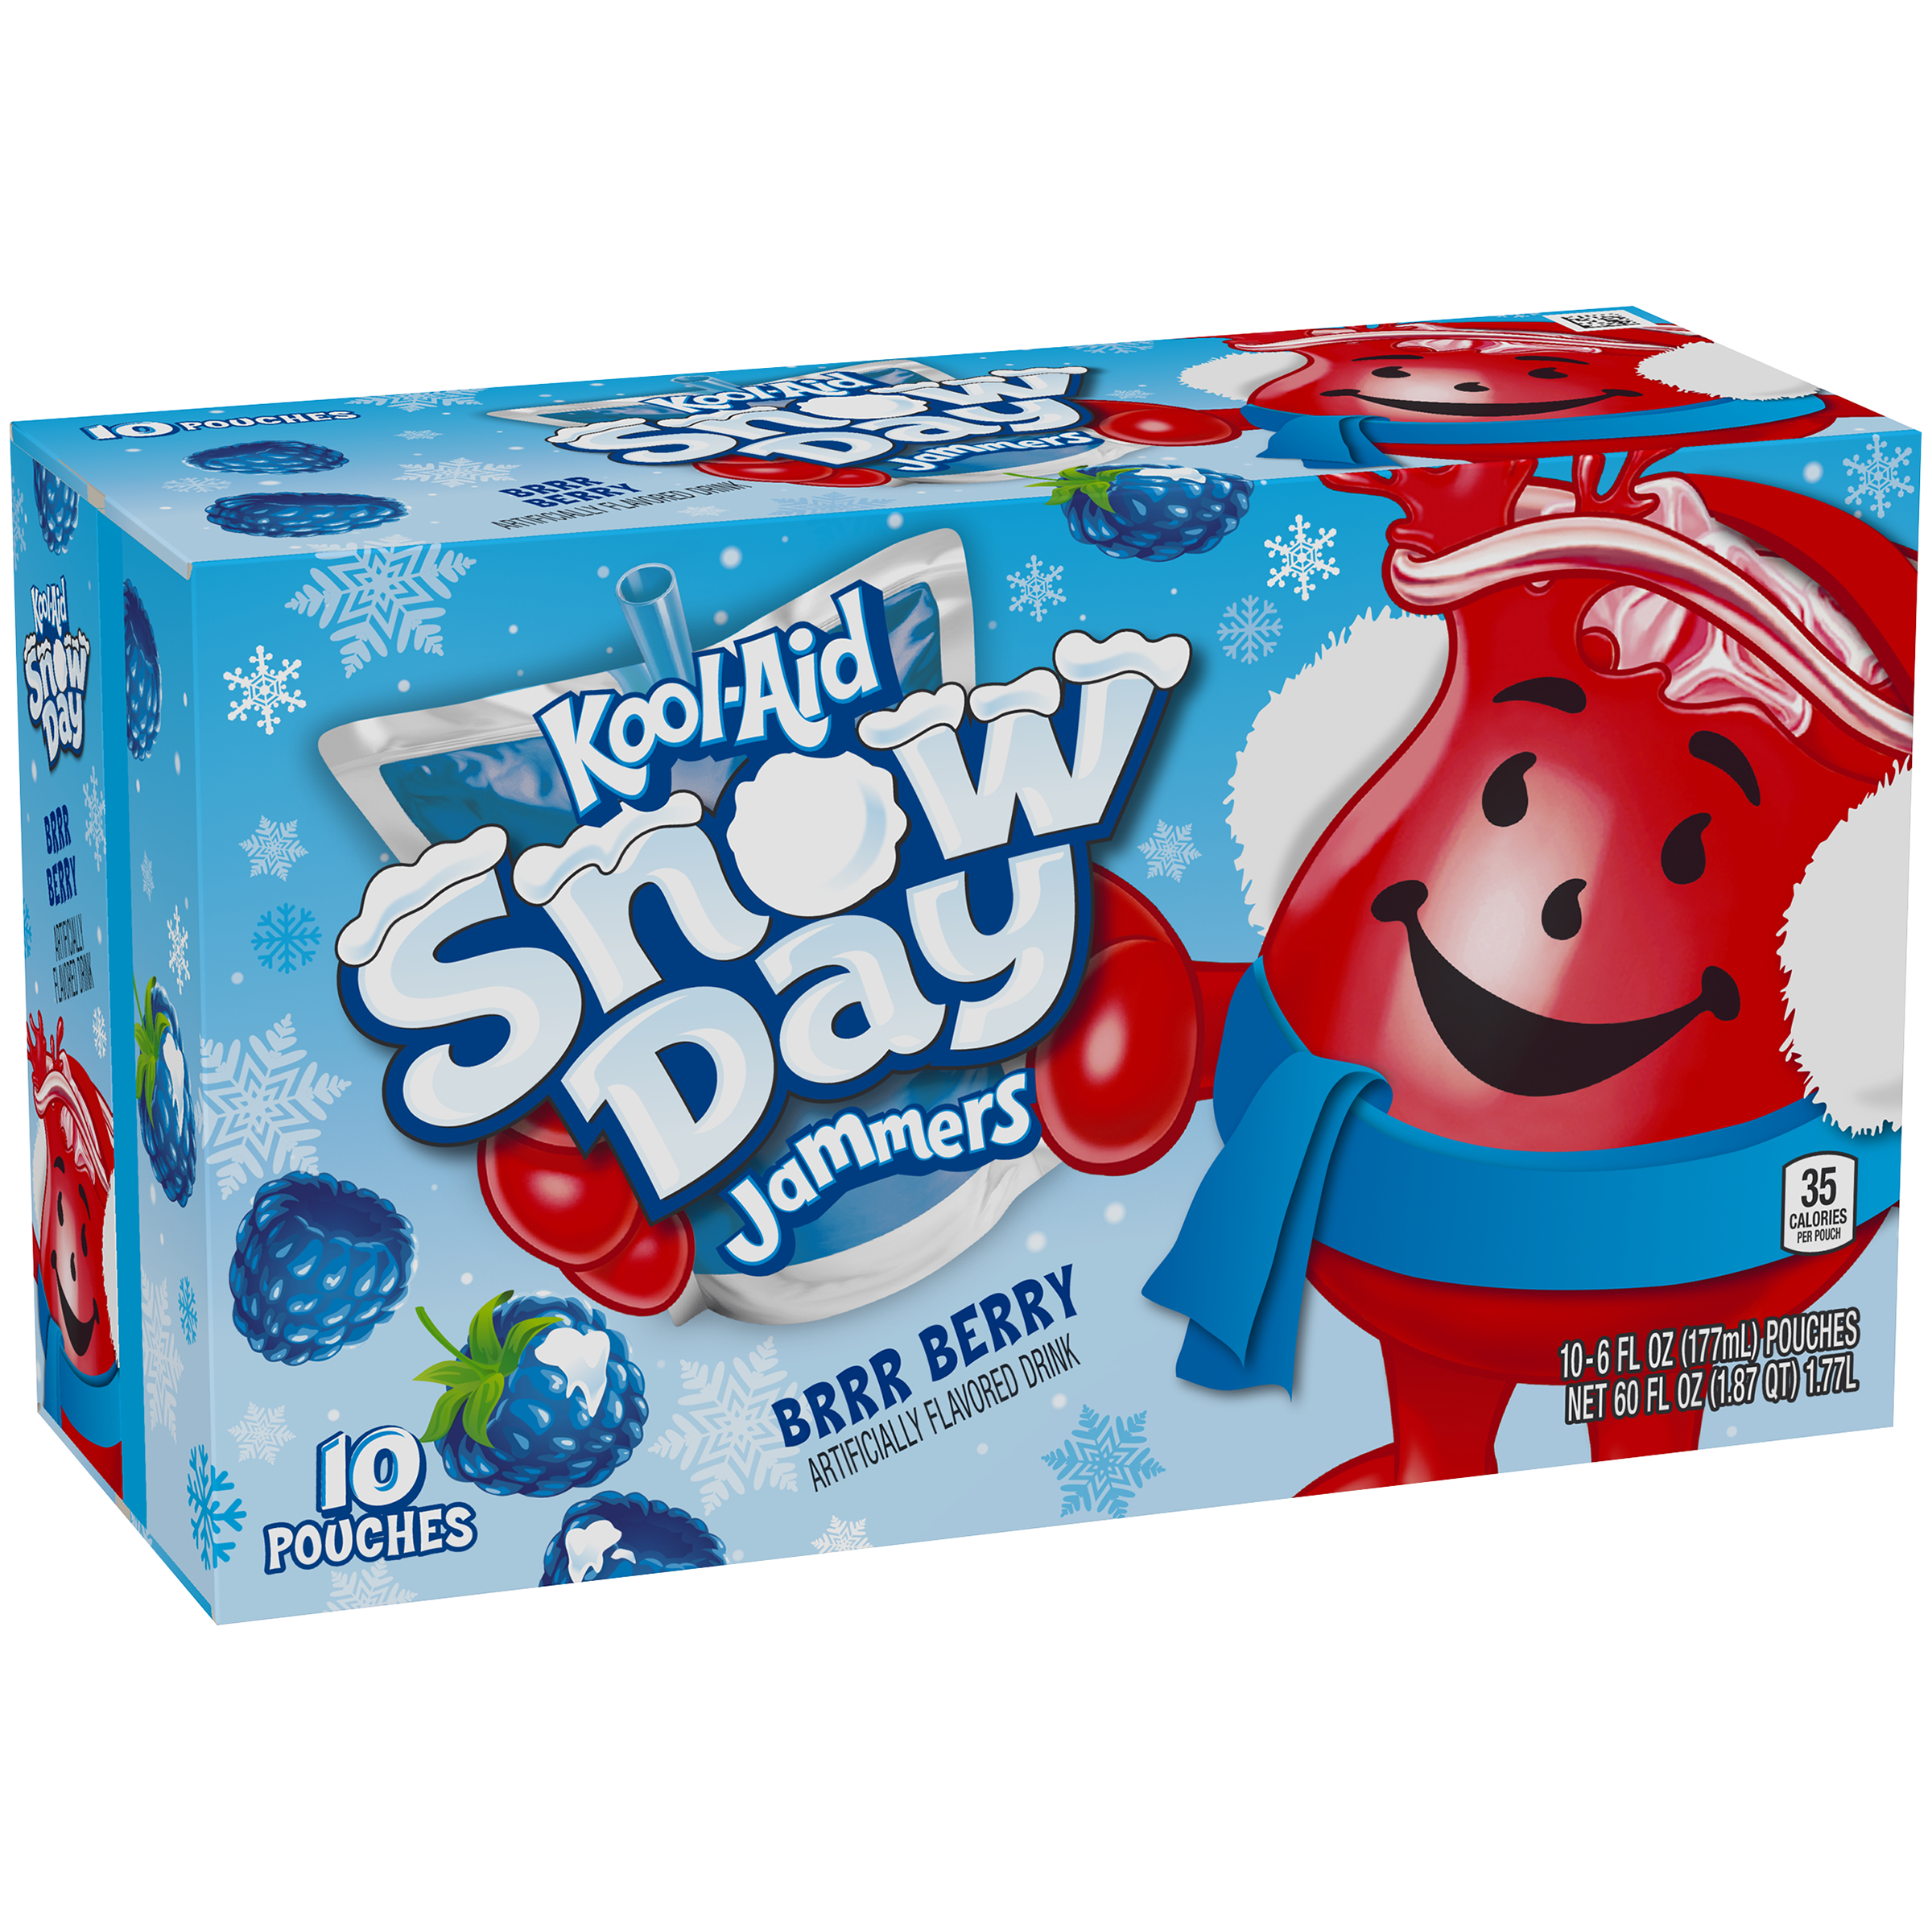 Kool-Aid Jammers Boomin' Berry Ready-to-Drink Soft Drink 10-6 fl oz Pouches